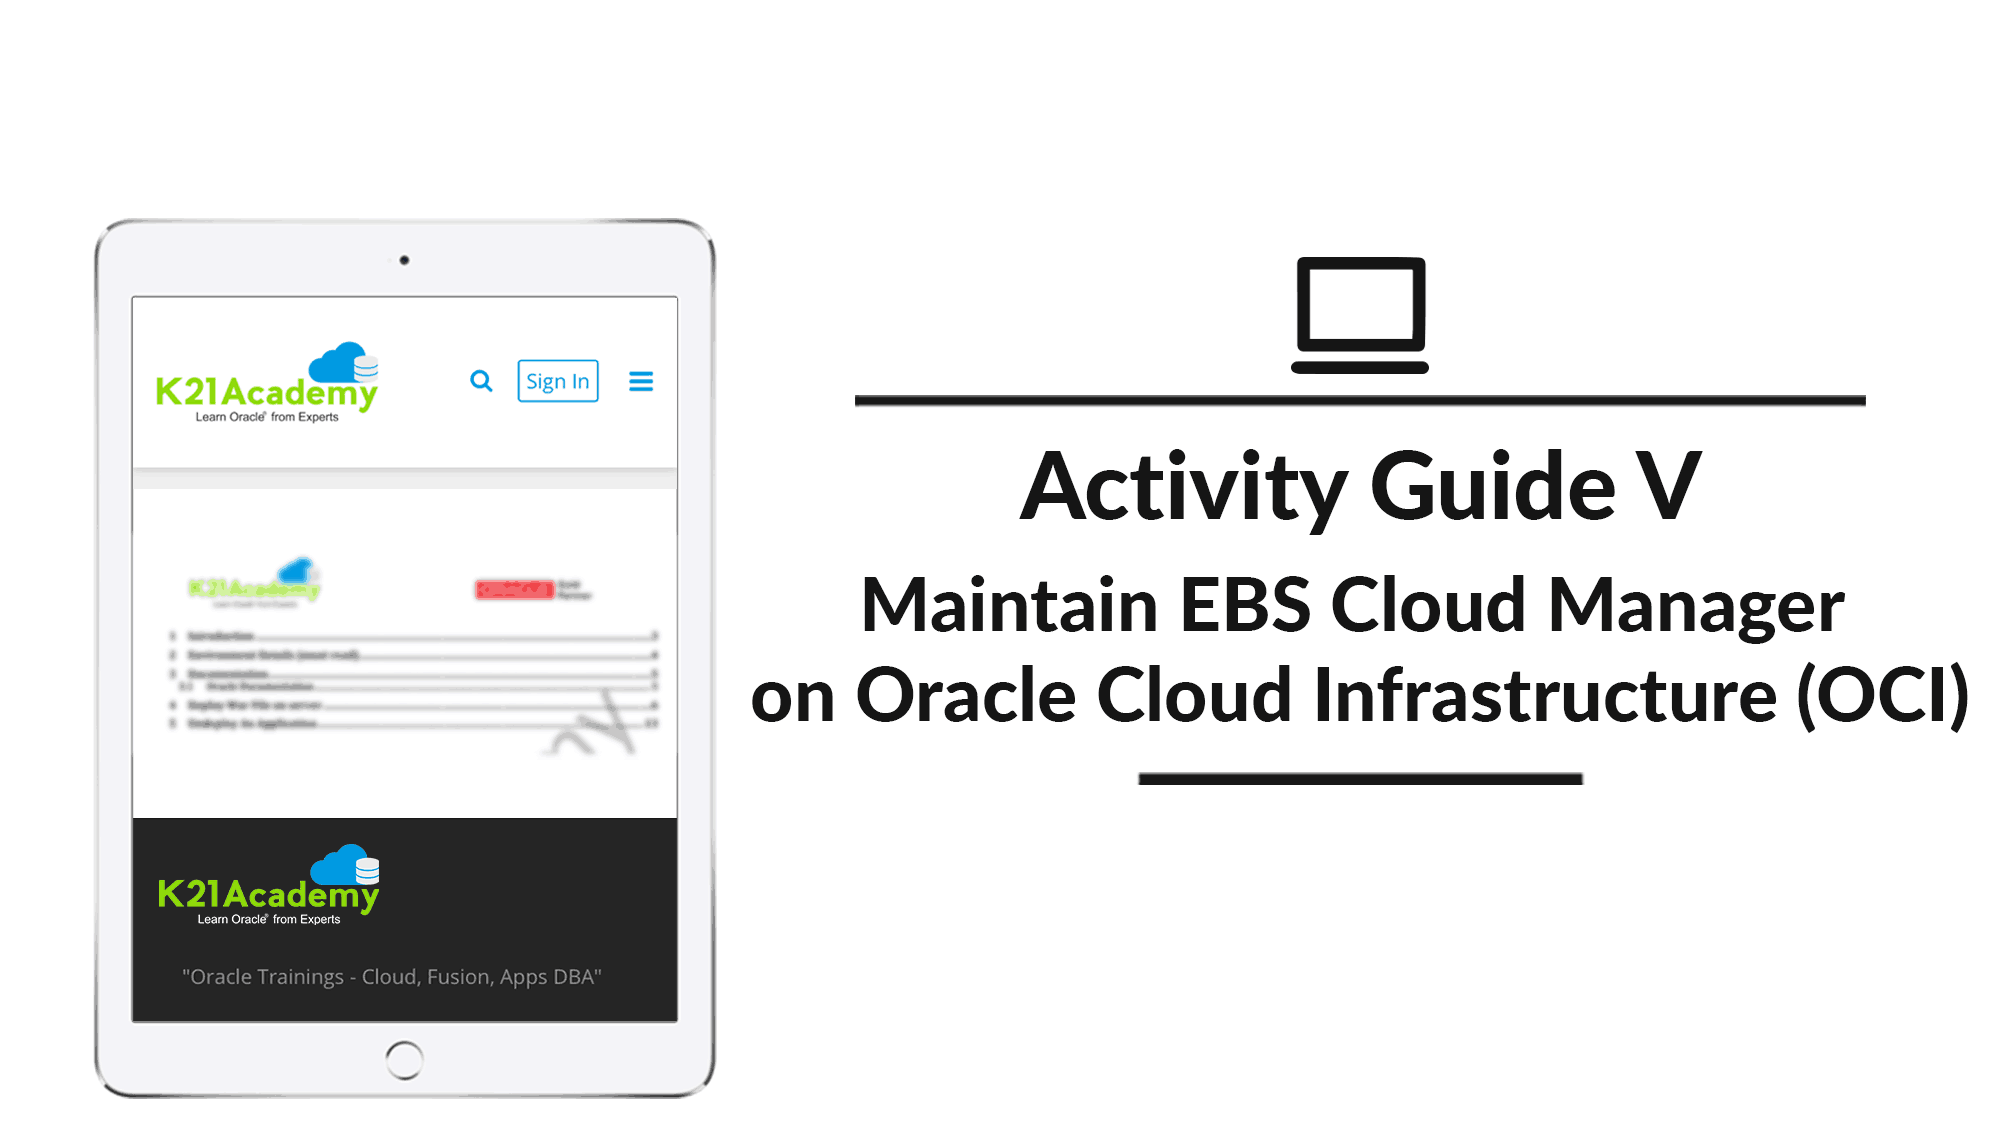 Maintain EBS cloud manager